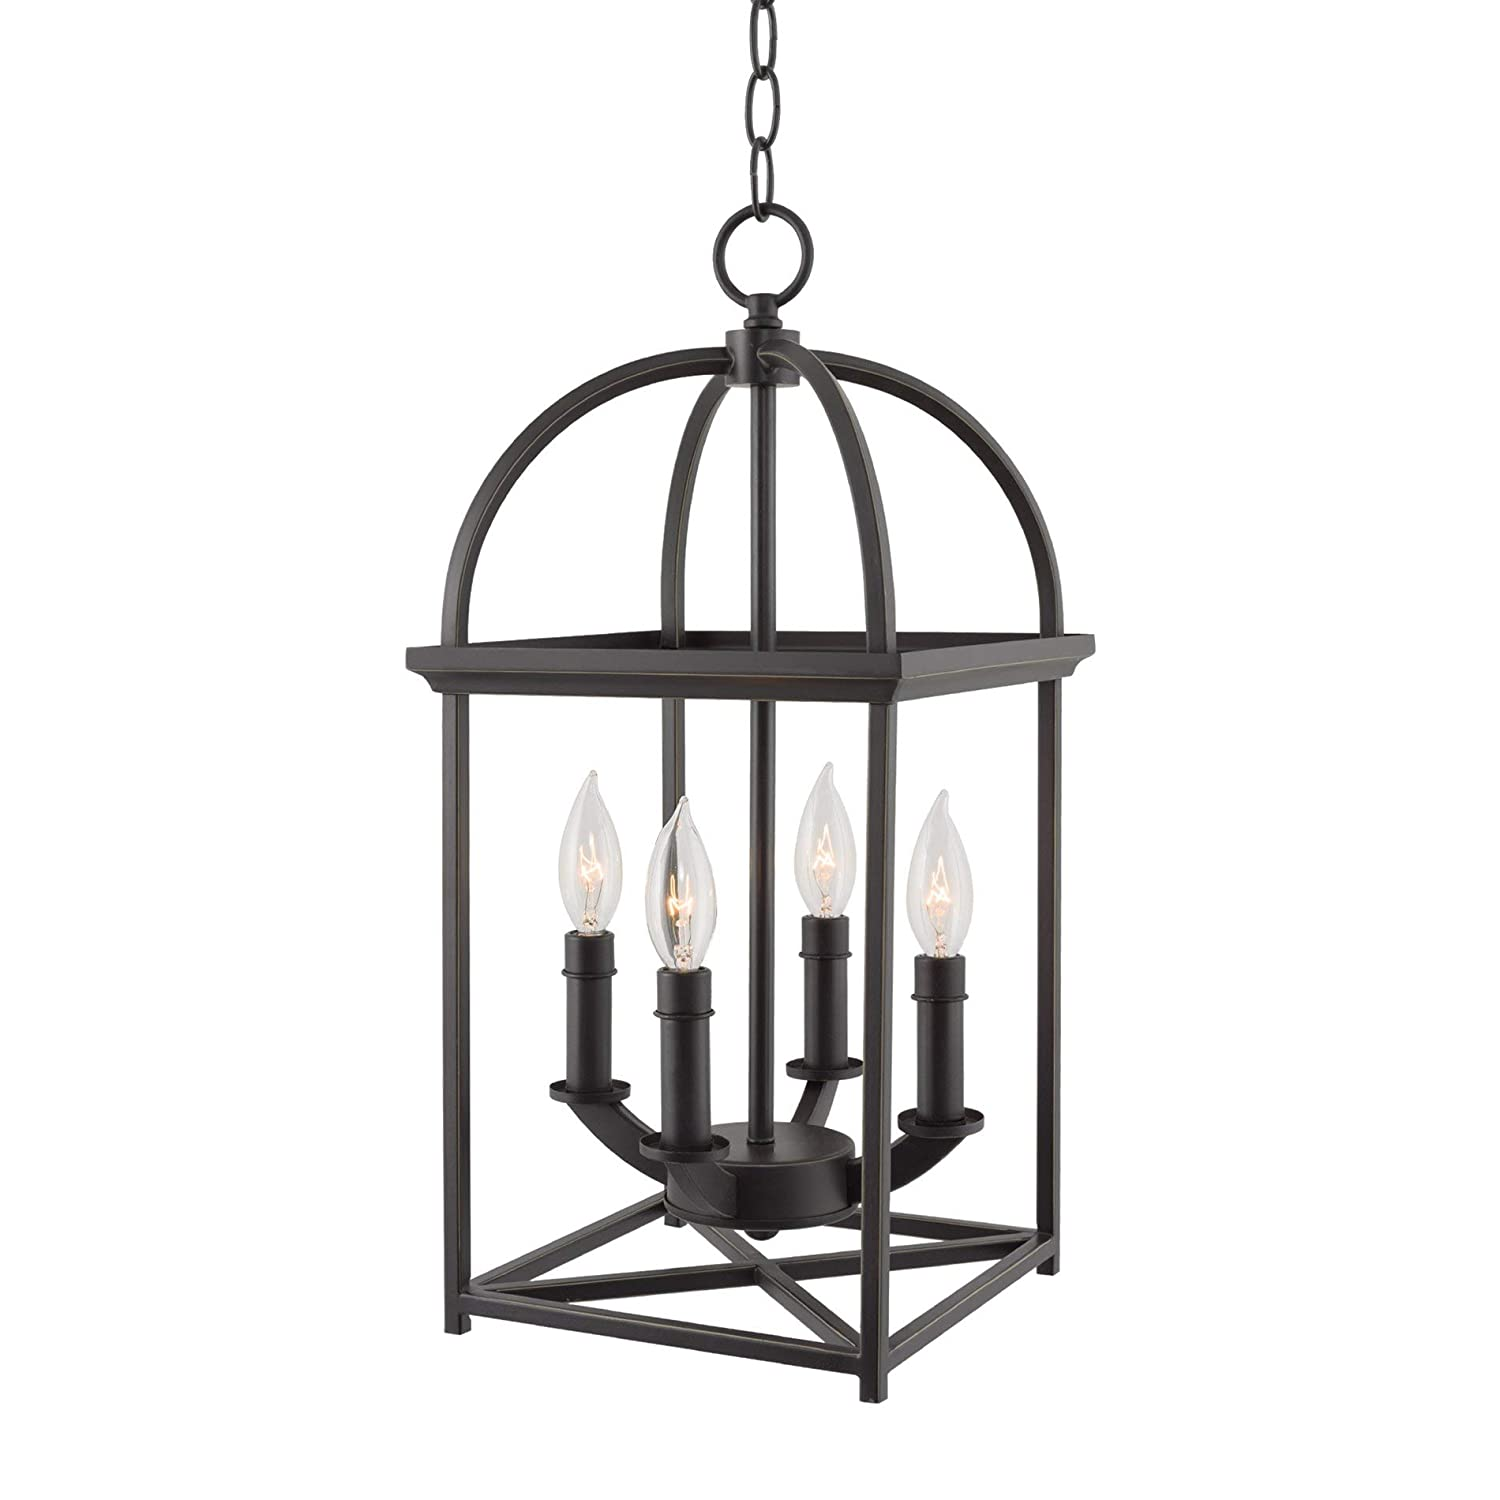 "Kira Home Amesbury 21"" Foyer Bird Cage Lantern 4-Light Chandelier, Oil Rubbed Bronze Finish with Hand-Painted Gold Trim"